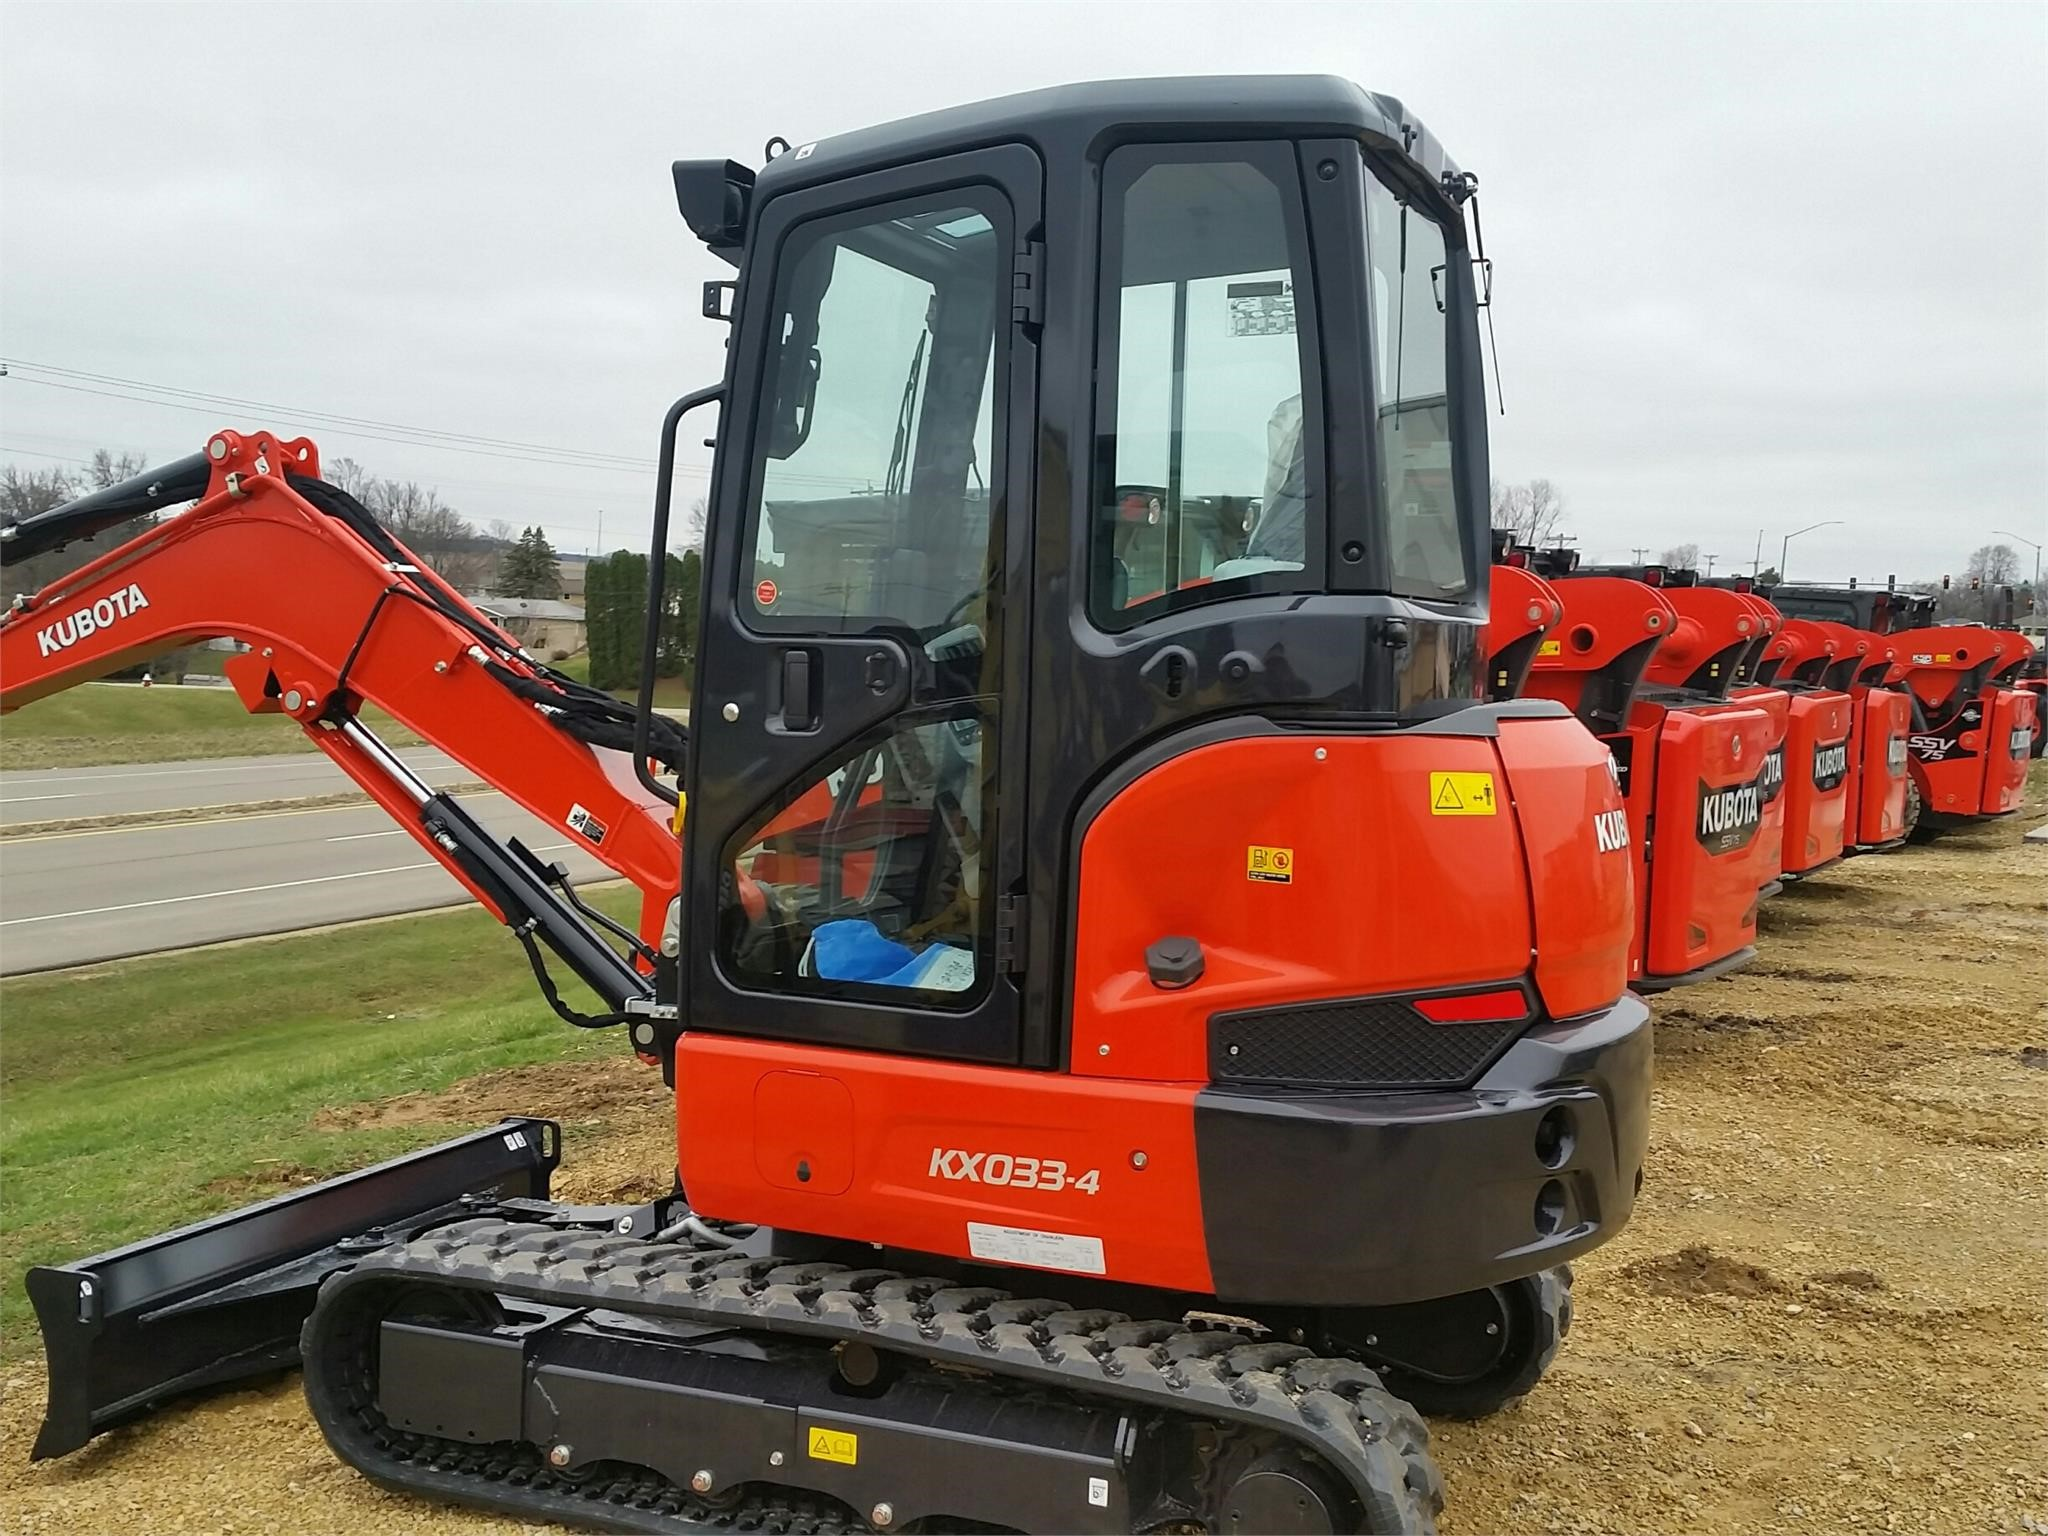 2020 Kubota KX033-4 Excavators and Mini Excavator